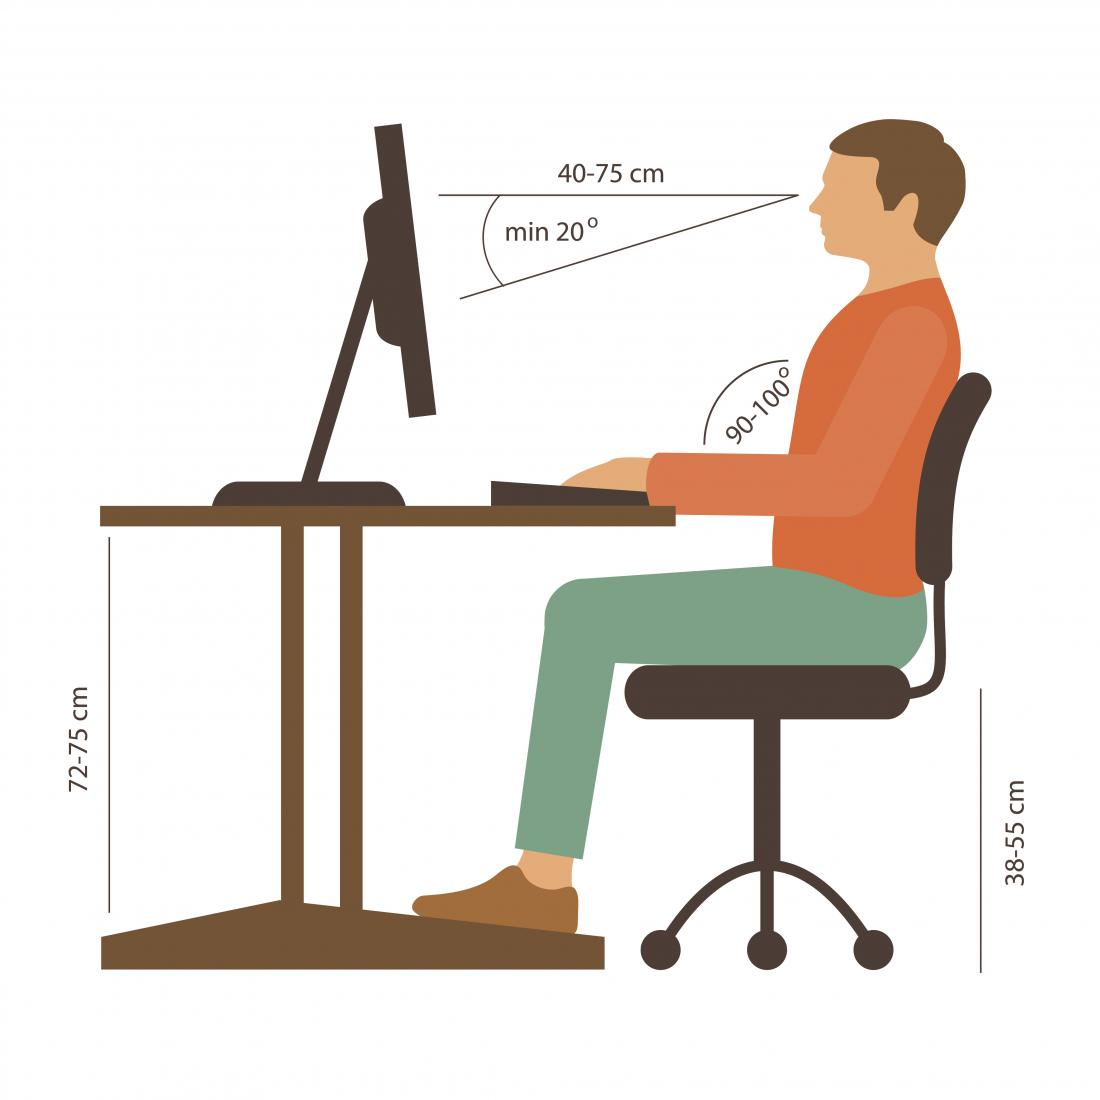 Pleasing Sitting Positions Posture And Back Health Inzonedesignstudio Interior Chair Design Inzonedesignstudiocom